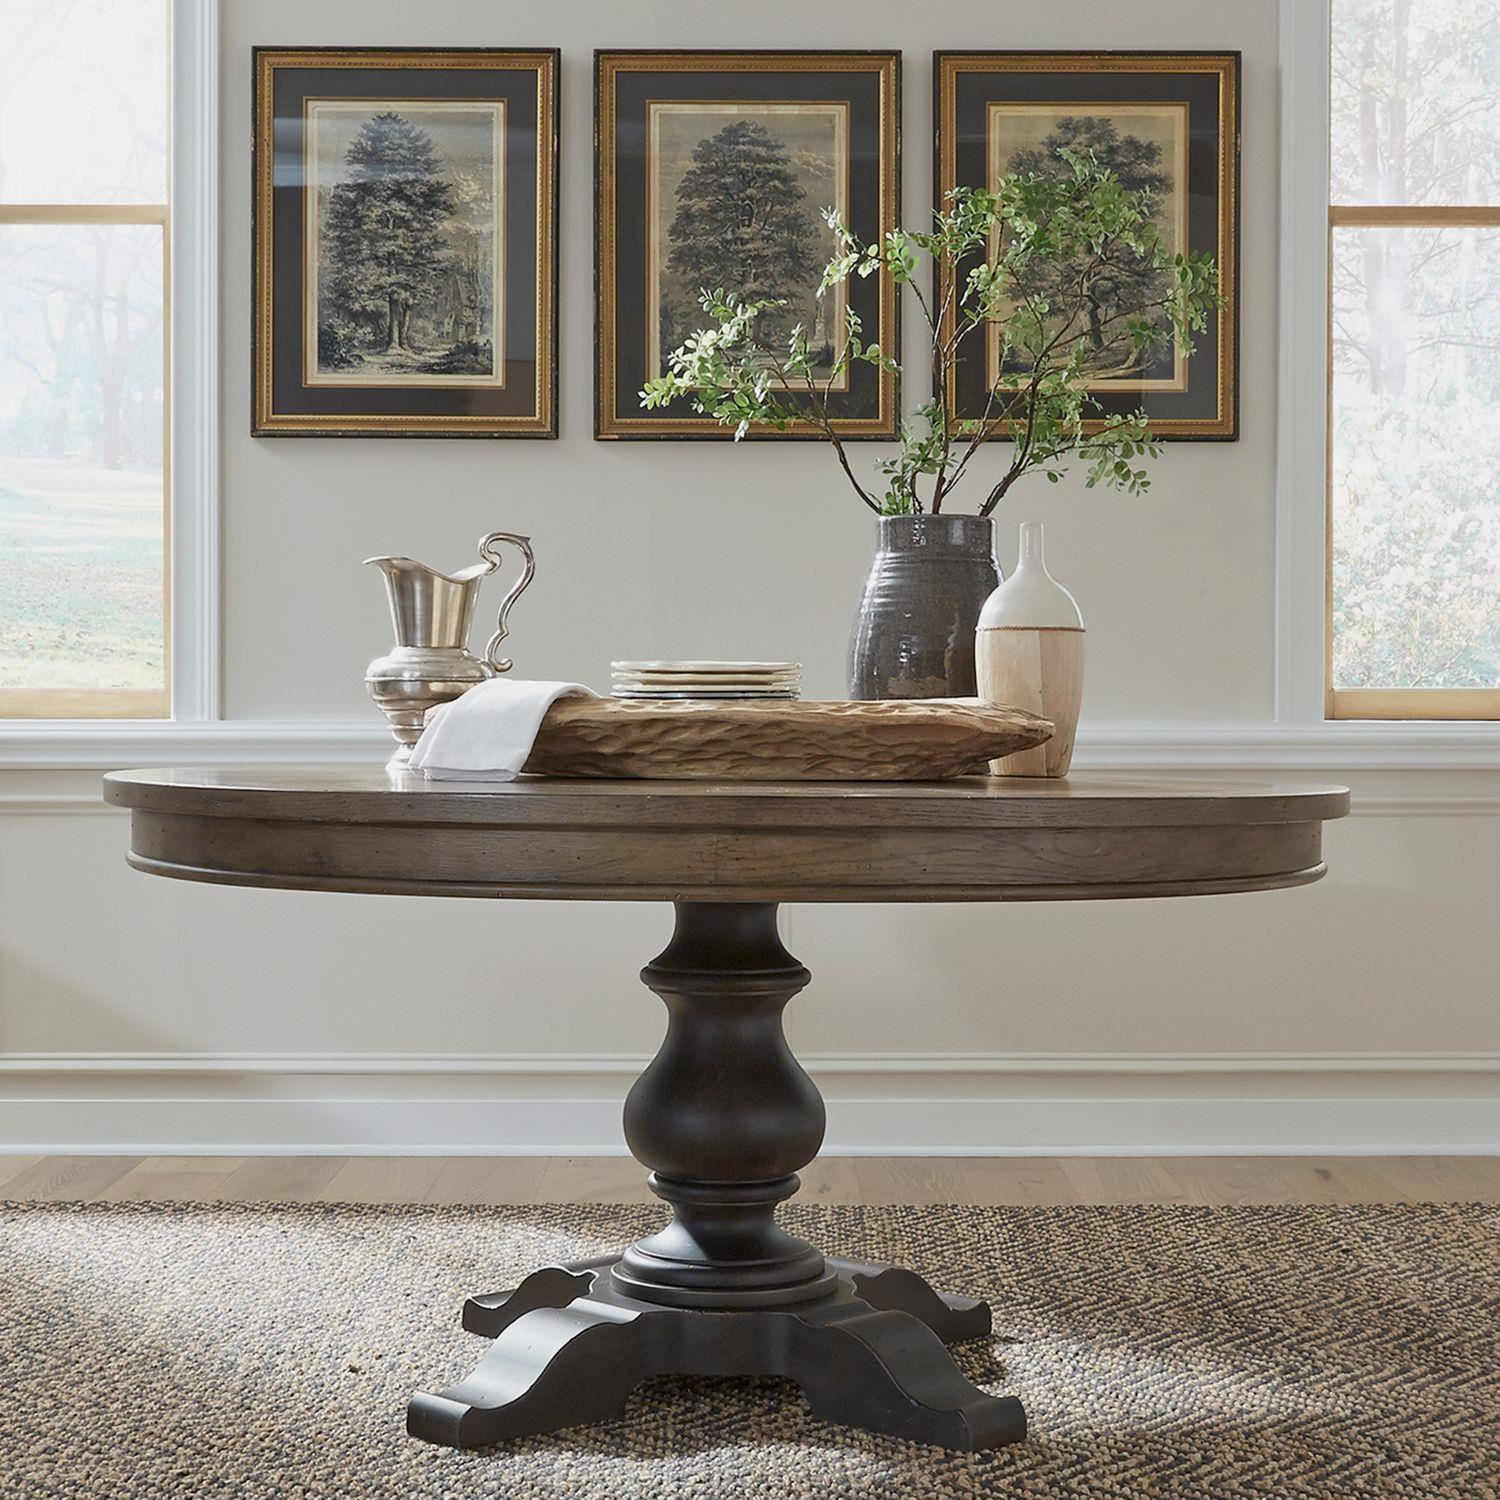 Americana Farmhouse 60 Inch Round Pedestal Table by Liberty Furniture at Johnny Janosik